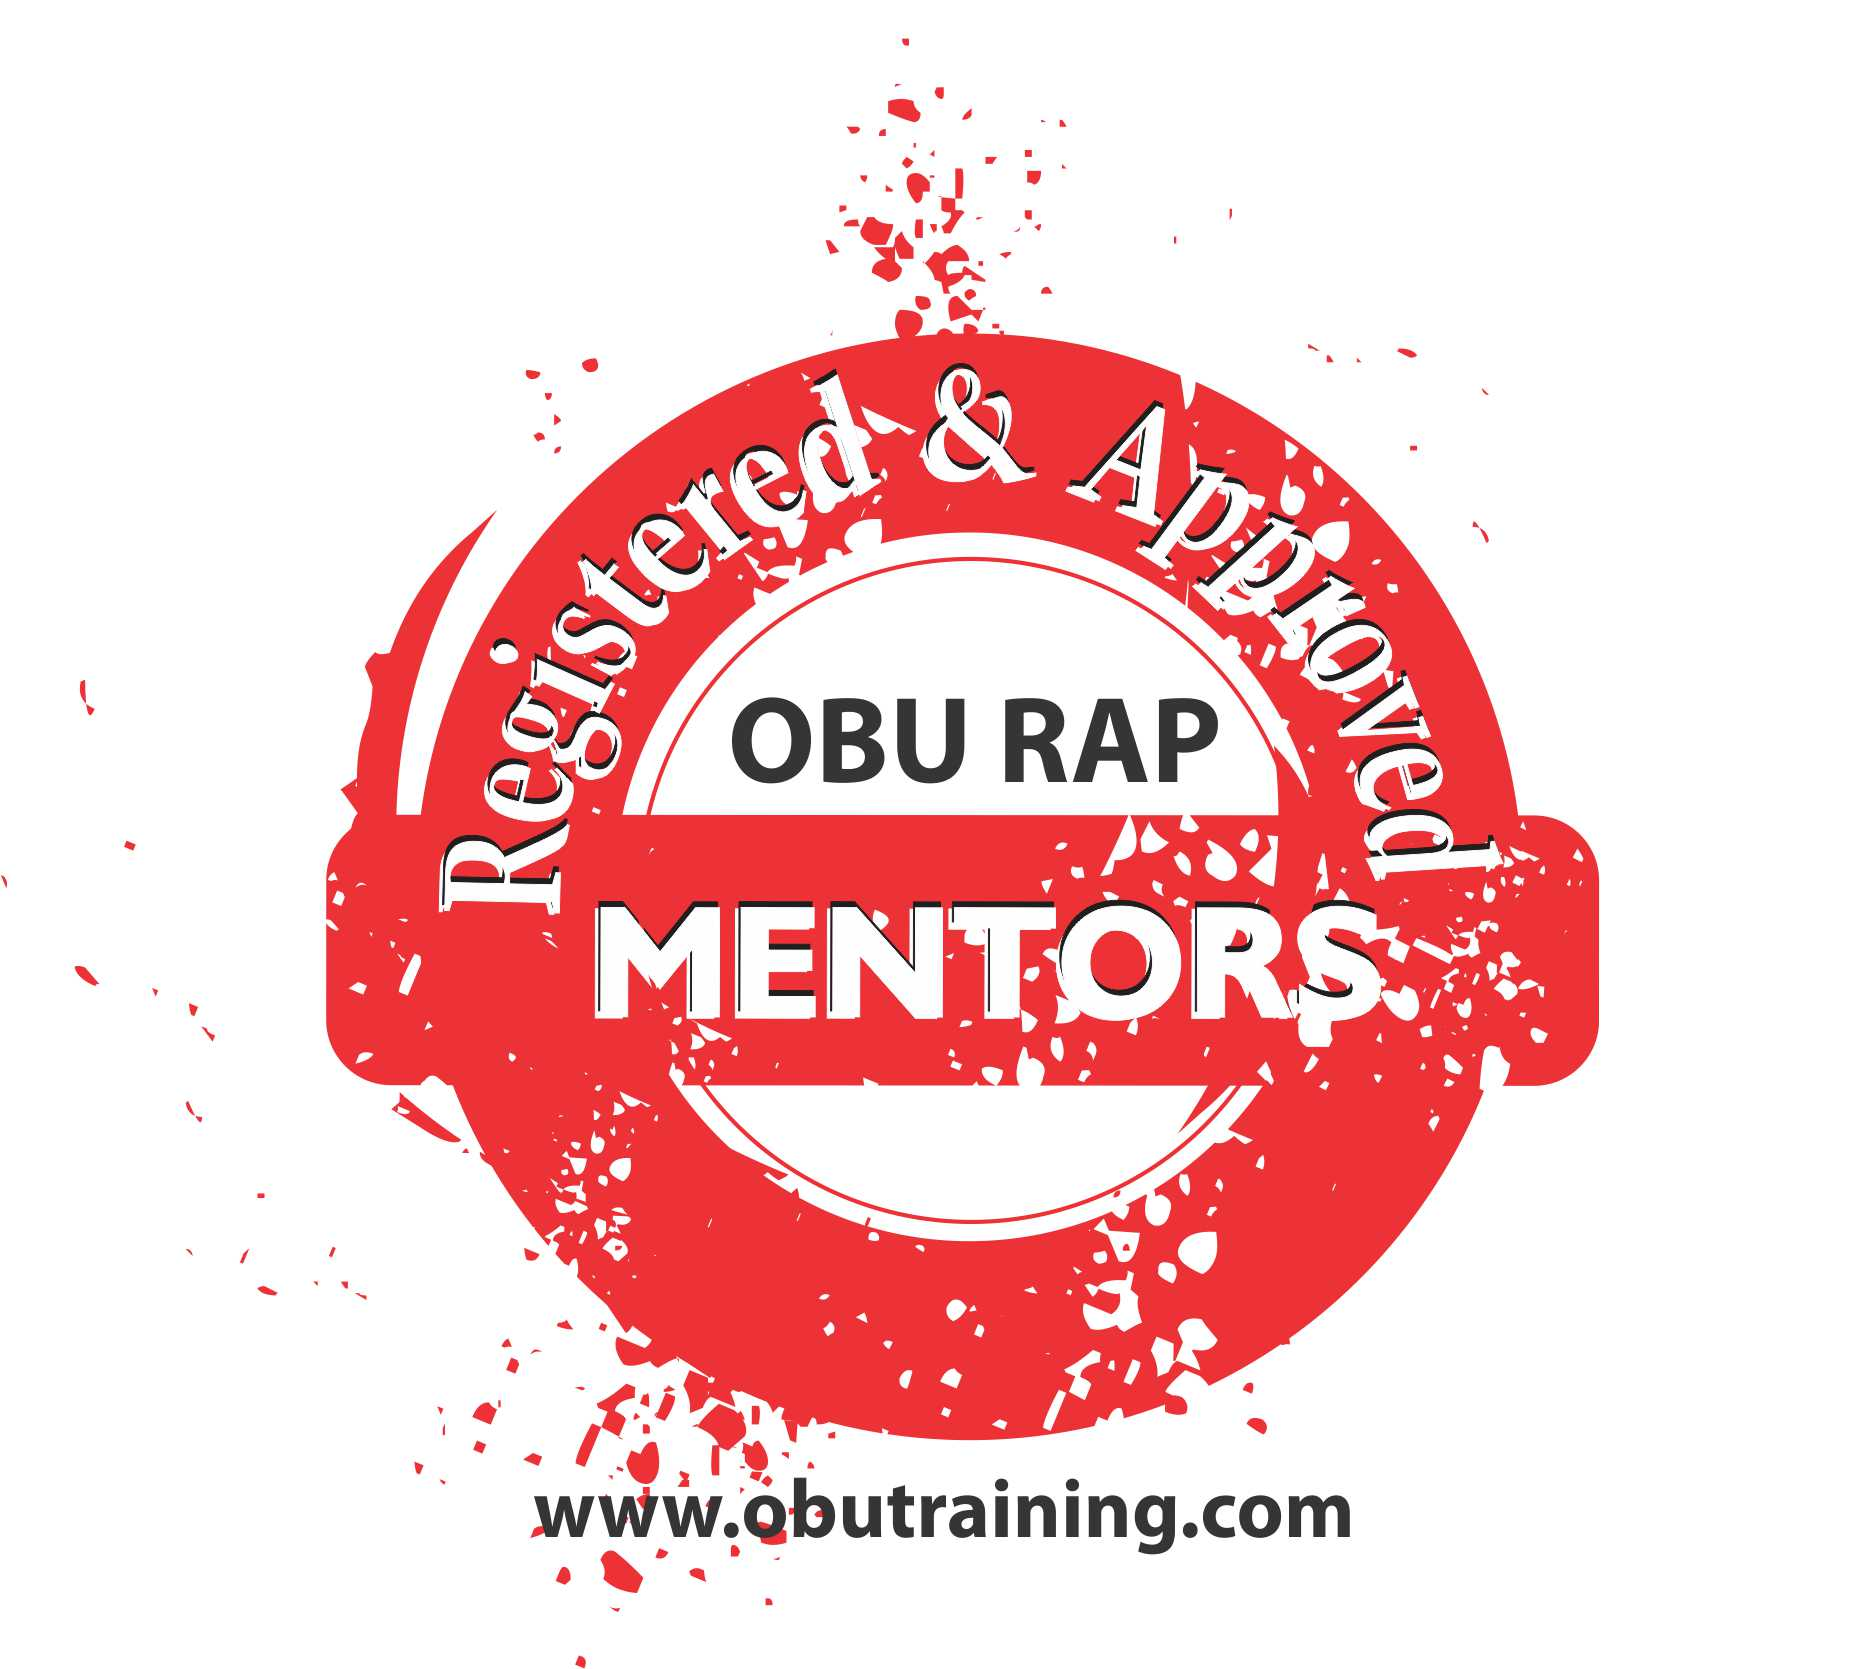 oxford brookes research and analysis project Registered mentor scheme: information for bsc (hons) applied accounting students oxford brookes university have launched a registered mentor scheme which is mandatory for all research and analysis project (rap) mentors.